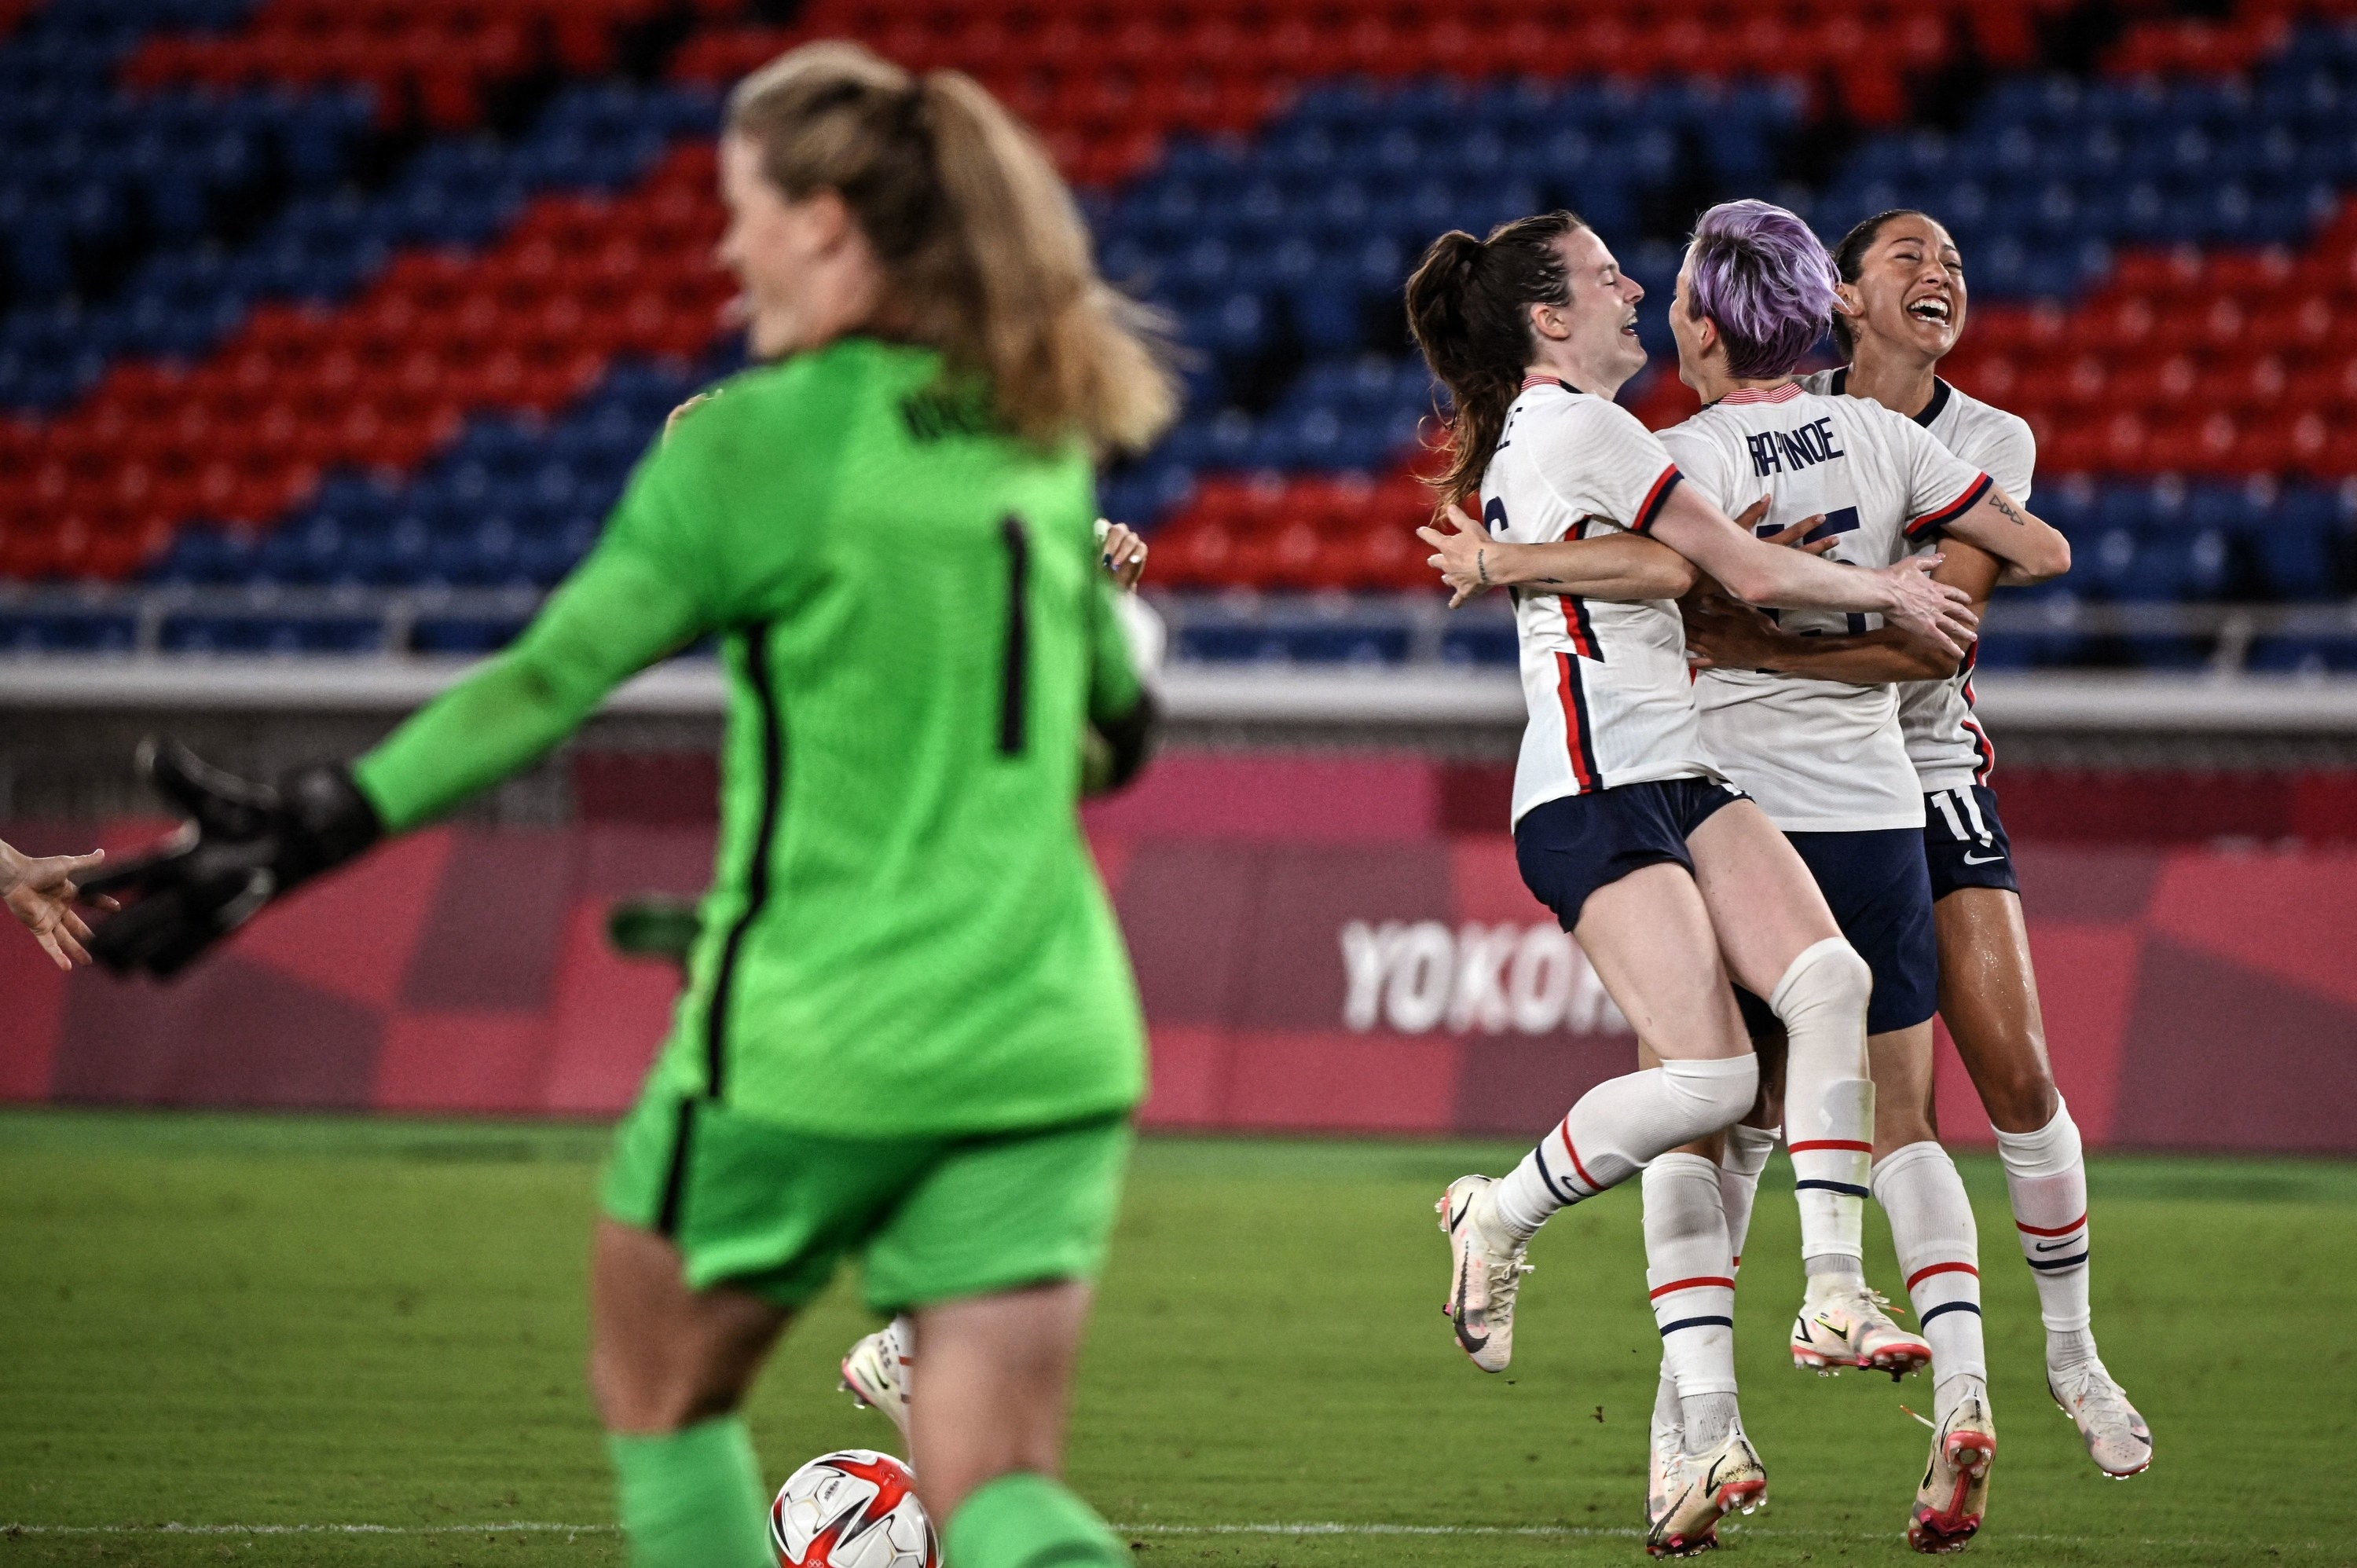 Smiling soccer players embrace in a group hug on the field